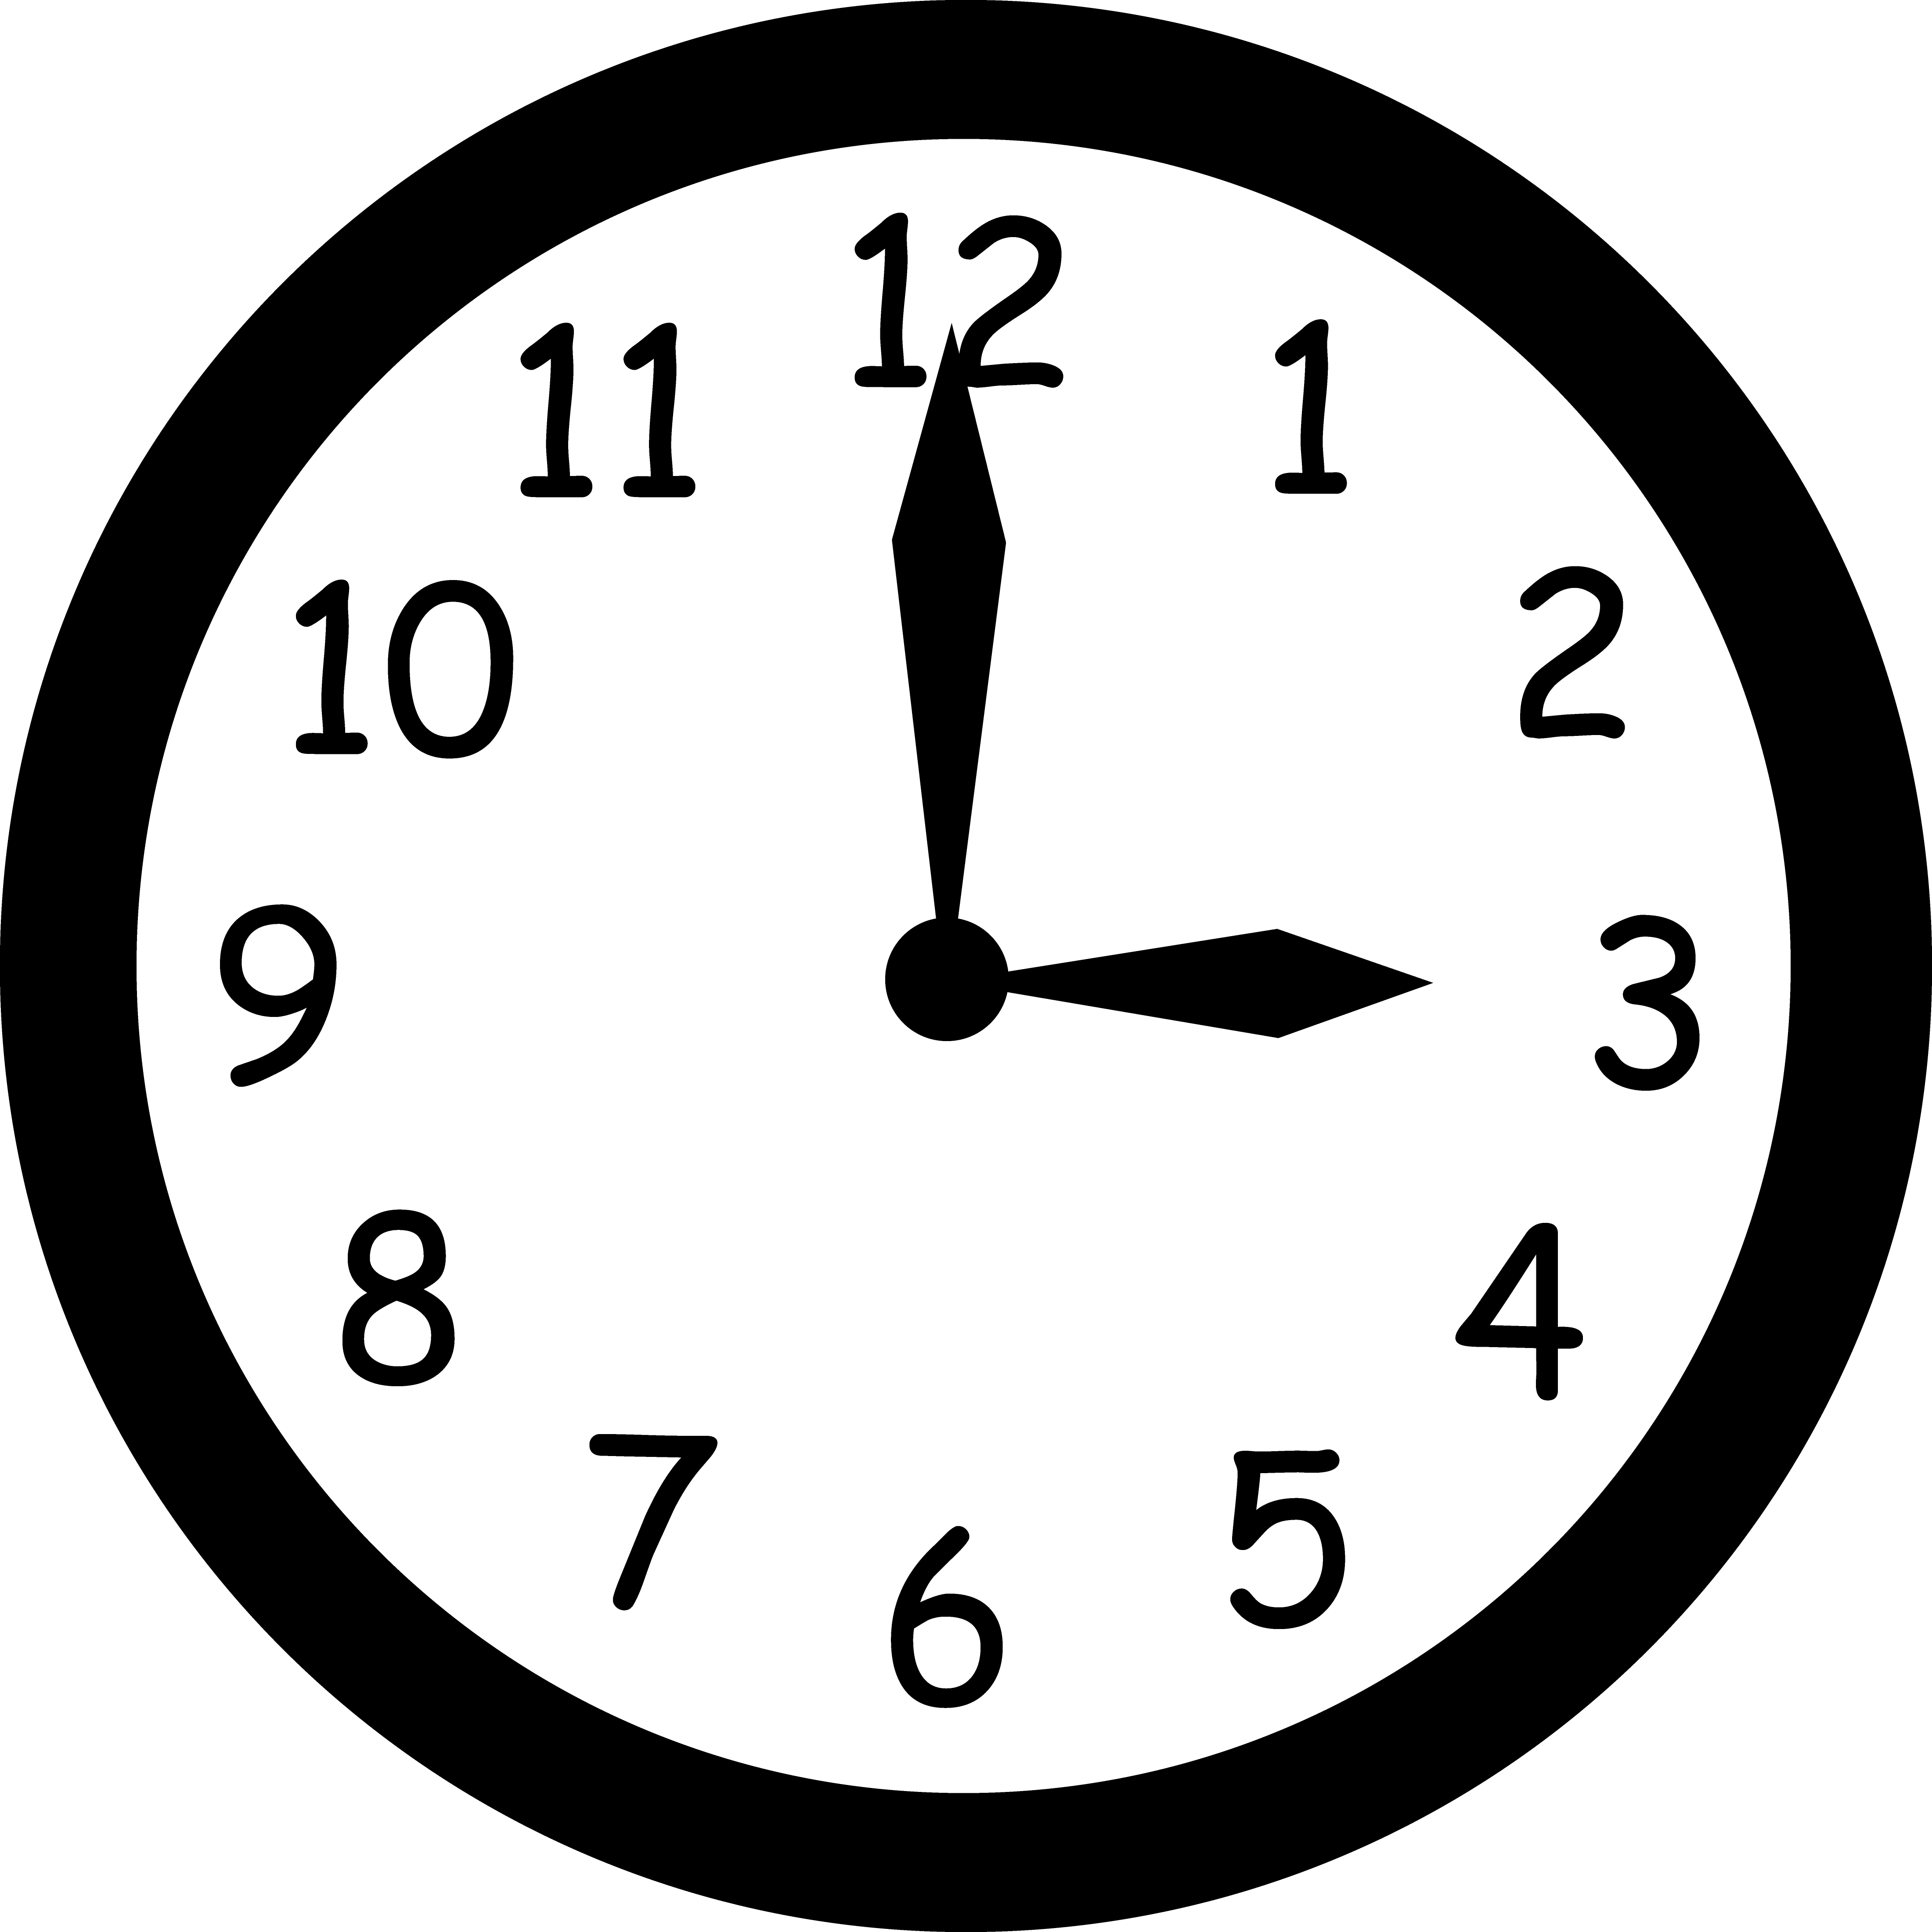 3 am clipart vector royalty free library Clock Clip Art | Clipart Panda - Free Clipart Images vector royalty free library